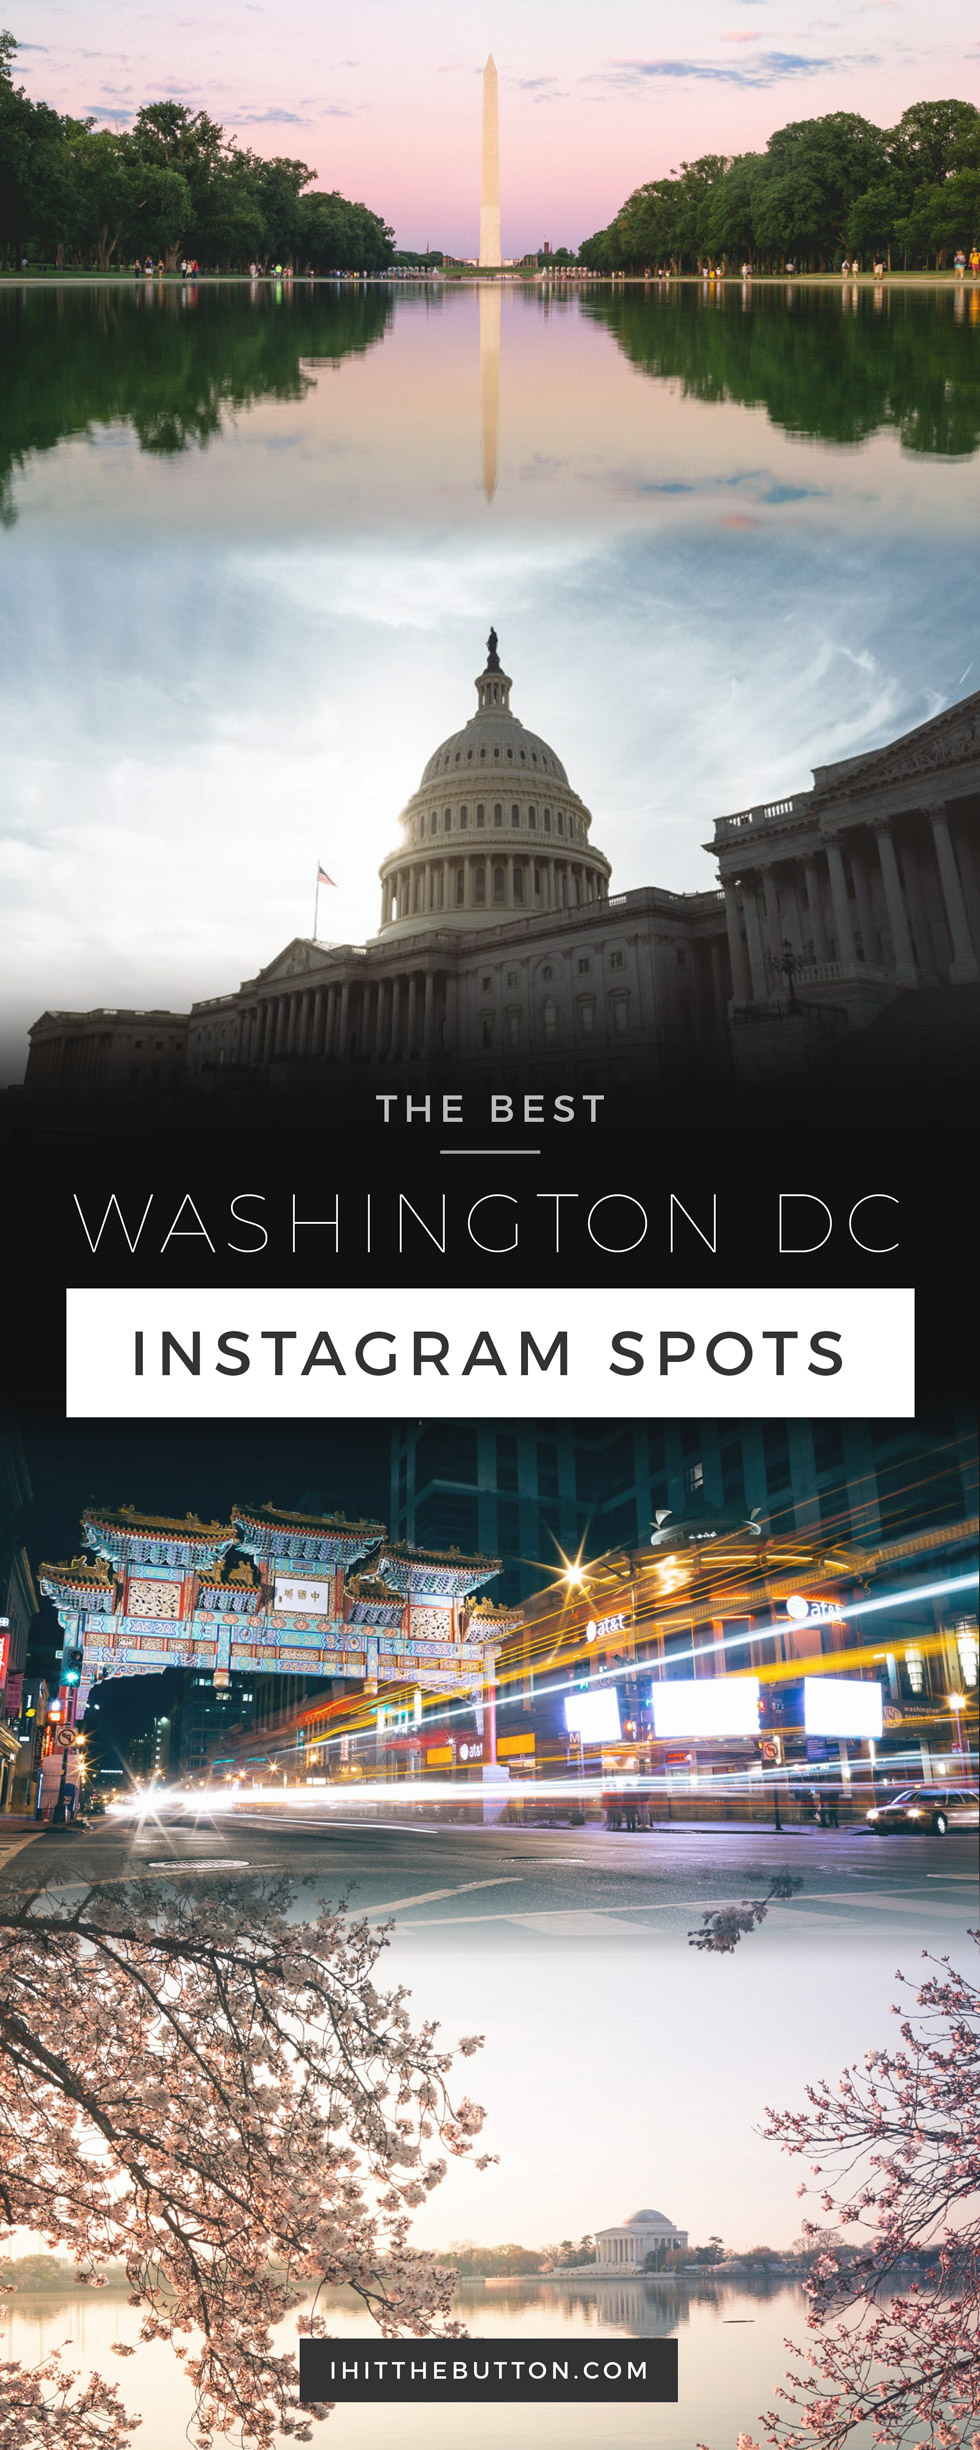 The Best Places To Take Pictures In Washington DC Photo Guide - Epic entries to washington posts 2016 travel photo contest